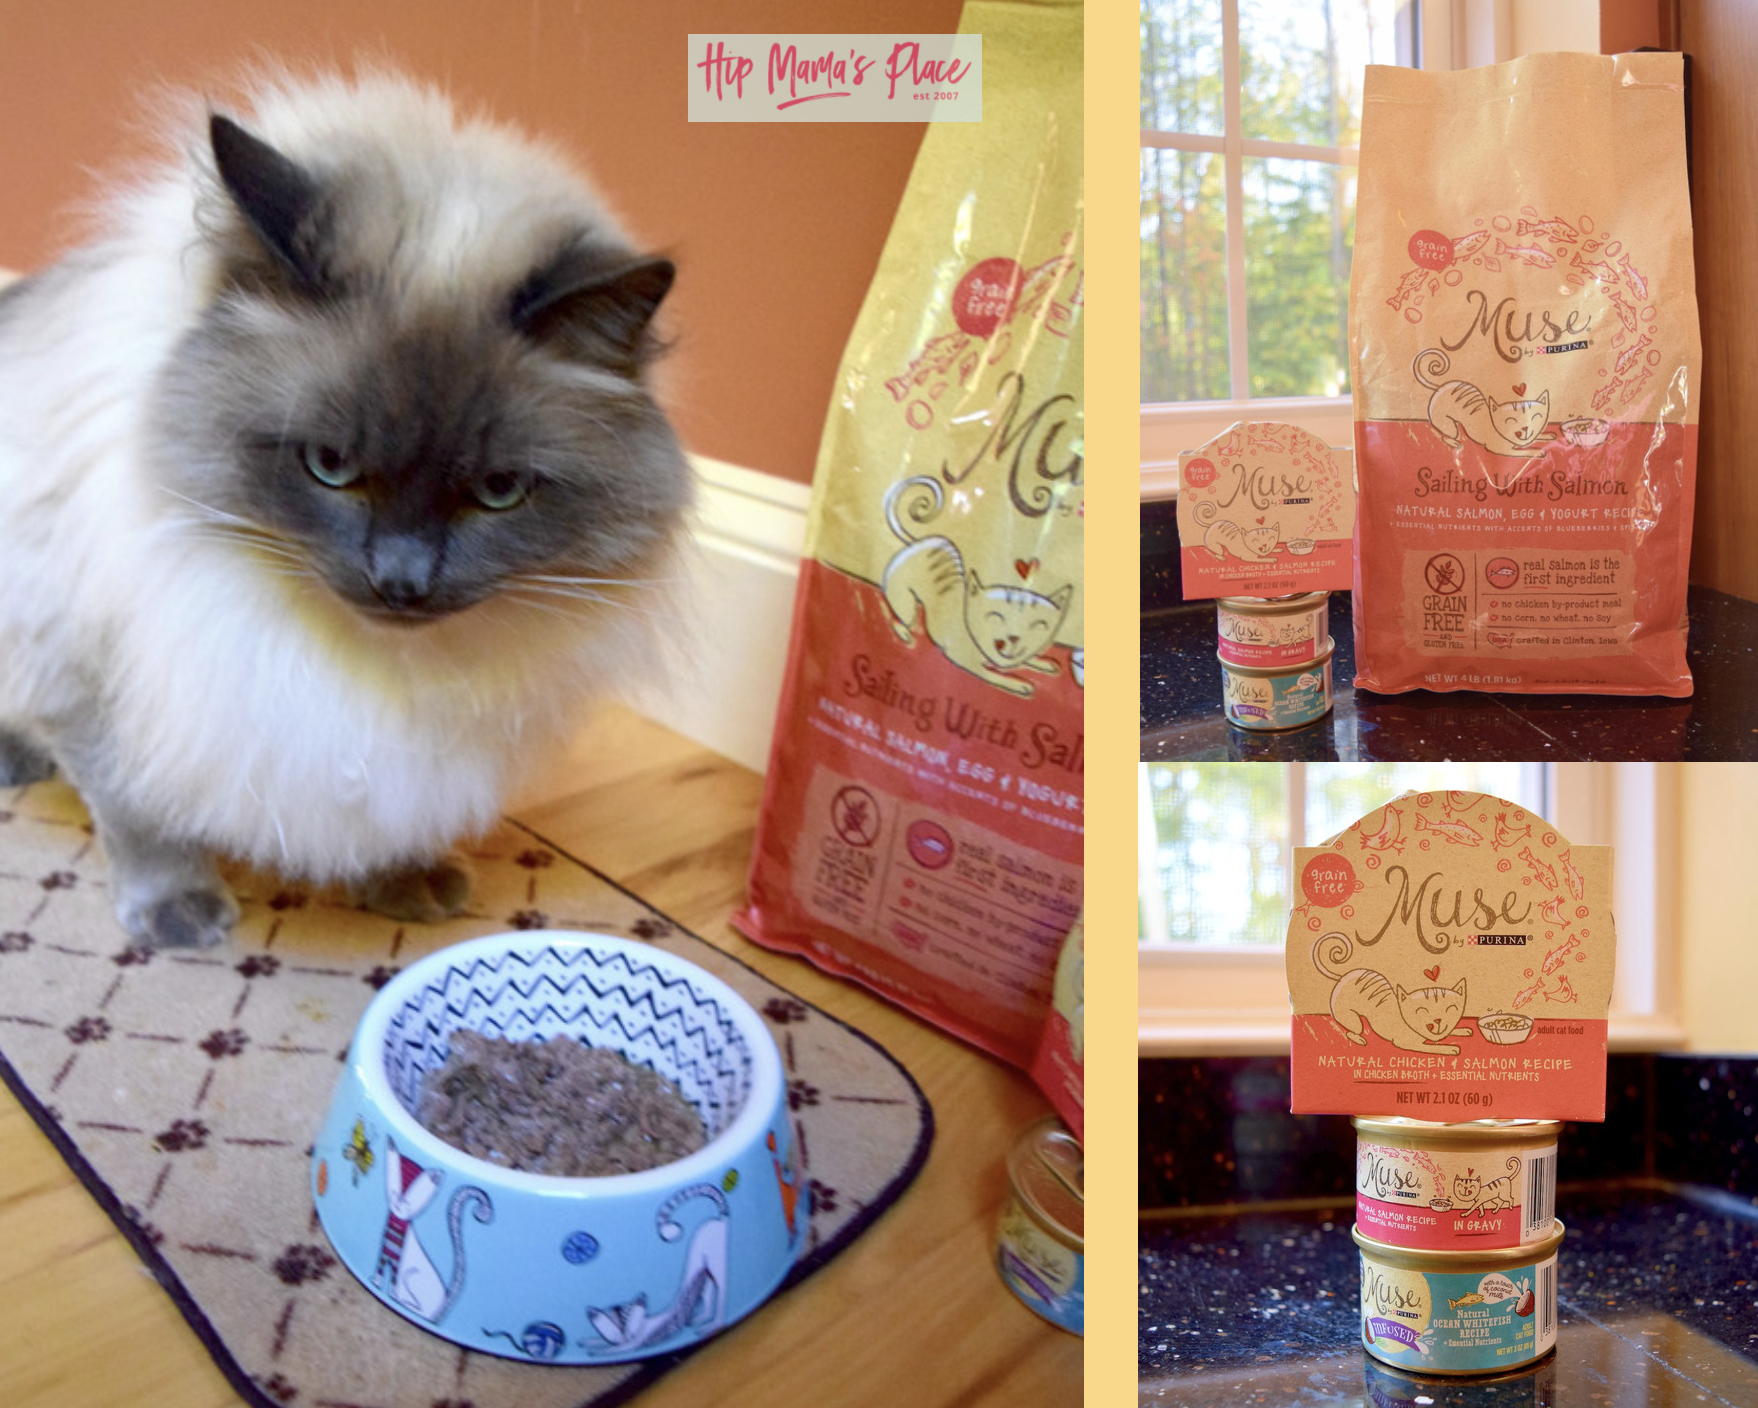 Our pet cat, Oscar, loves the new Purina Muse line of wet and dry grain-free food from Petco!